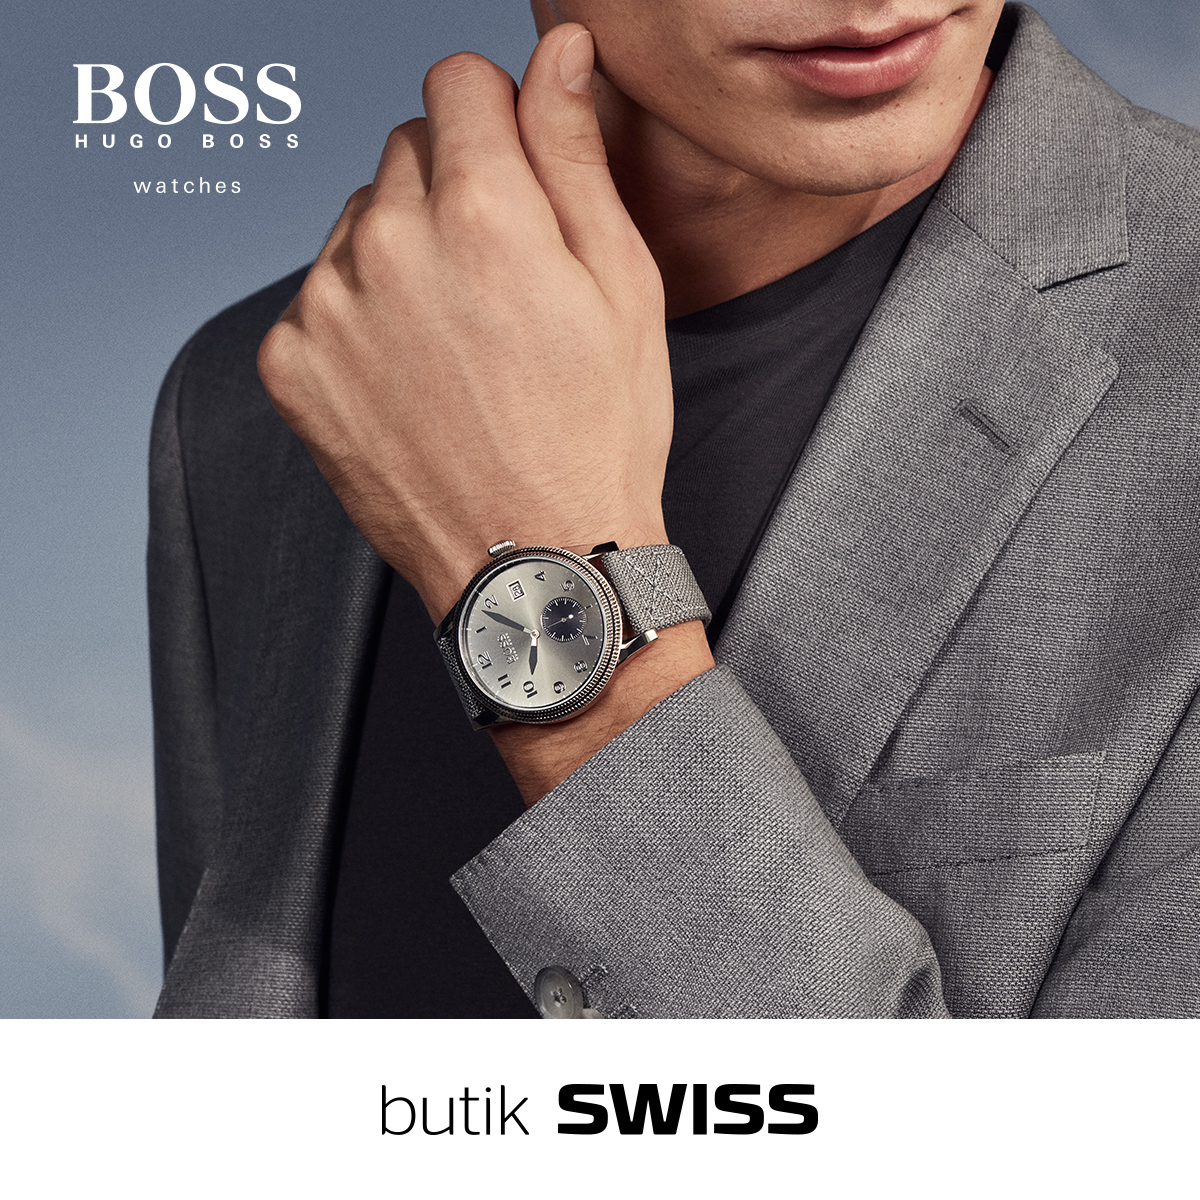 New BOSS watches in Swiss